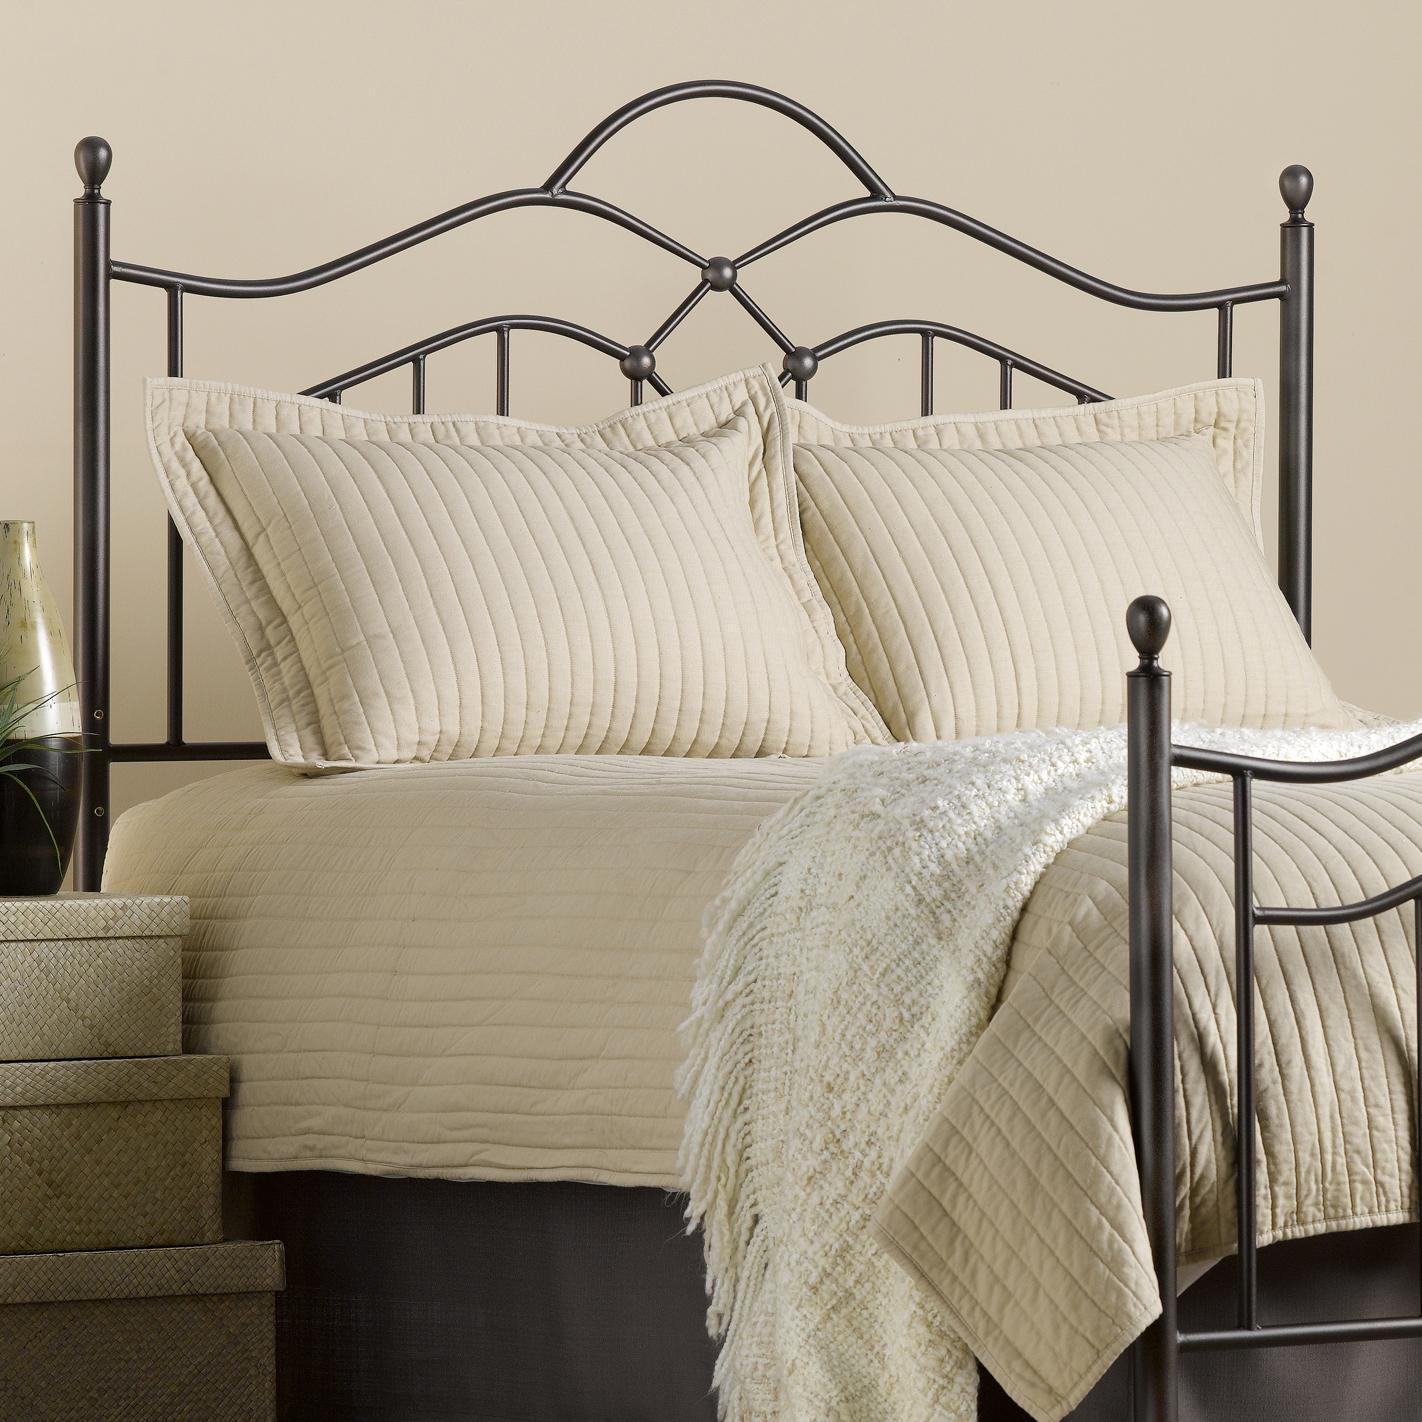 Hillsdale Metal Beds King Oklahoma Headboard - Item Number: 1300-670